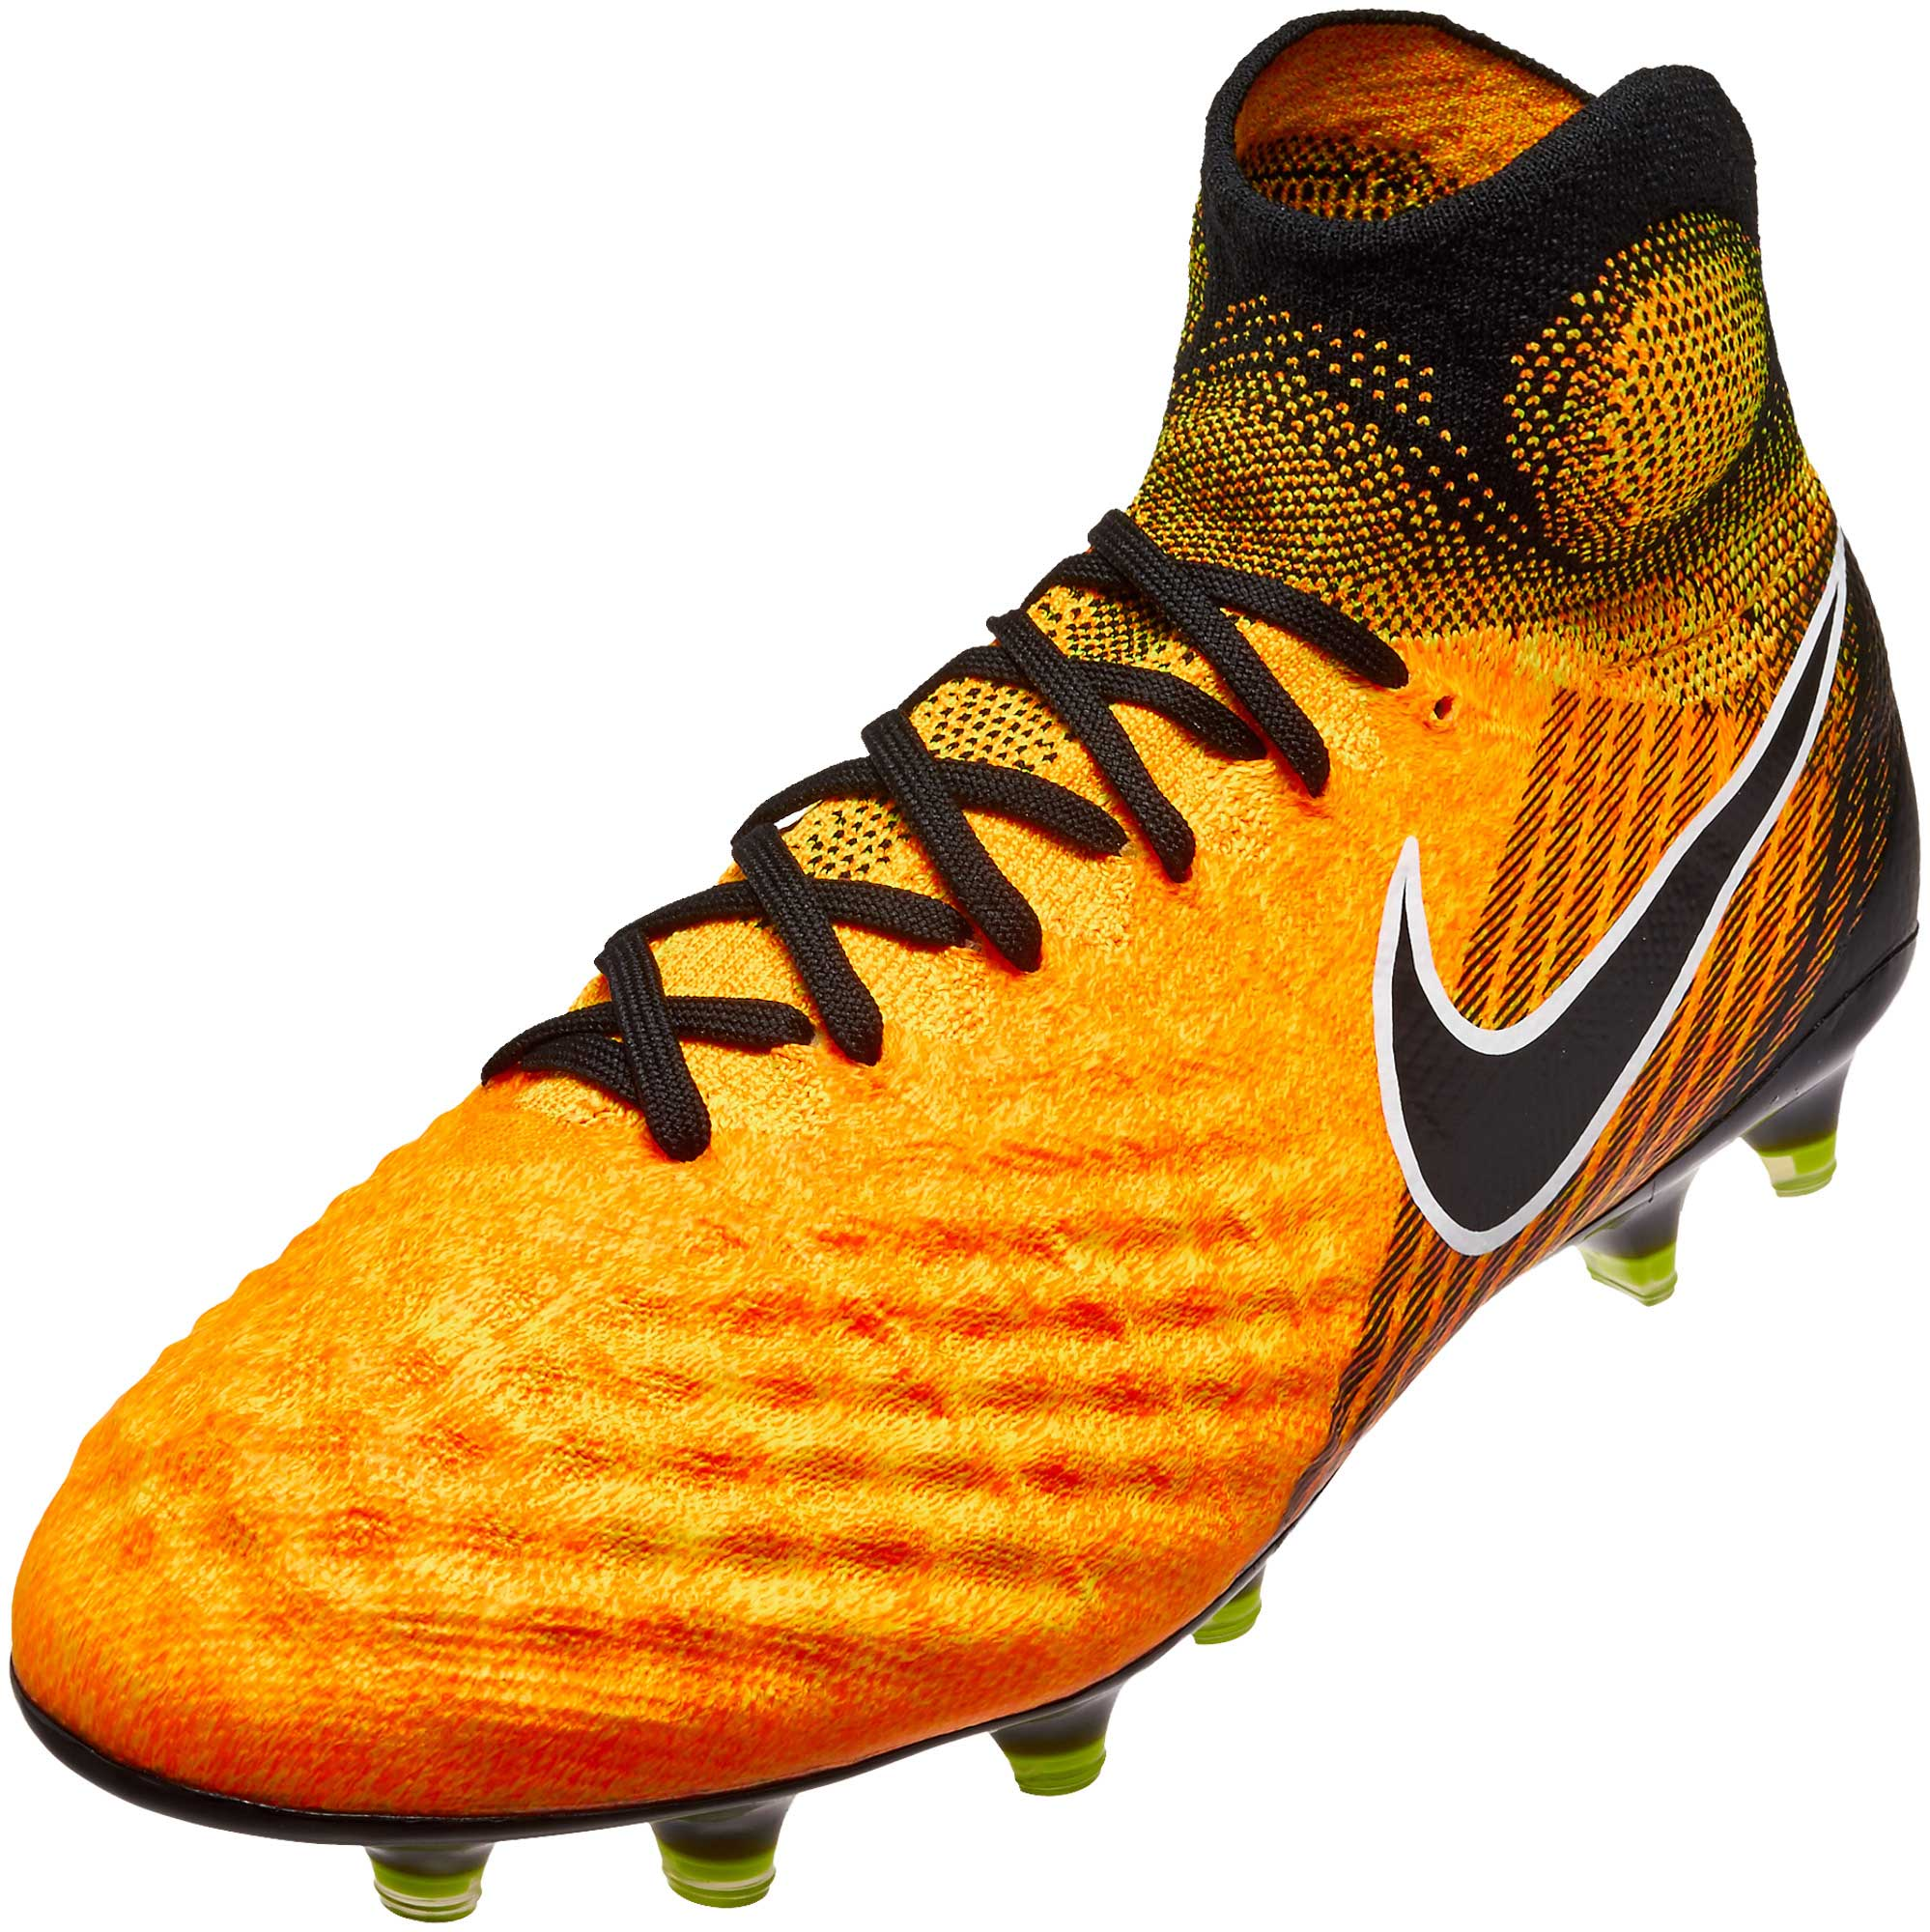 nike magista obra ii soccer cleats orange obra cleats. Black Bedroom Furniture Sets. Home Design Ideas